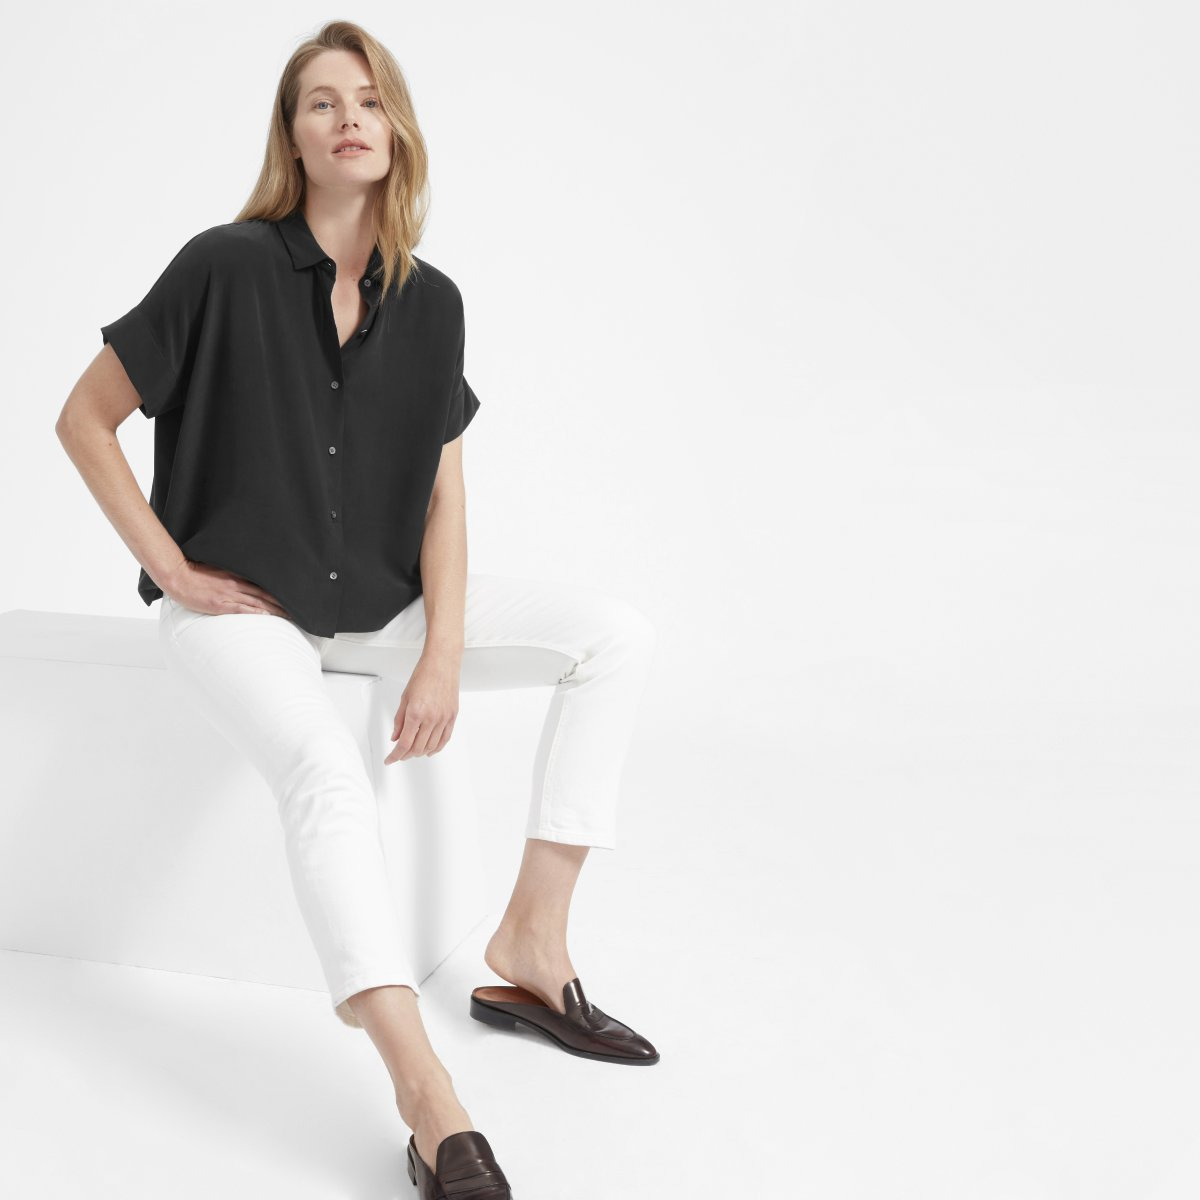 Everlane - The Silk Short-Sleeve Square Shirt $88